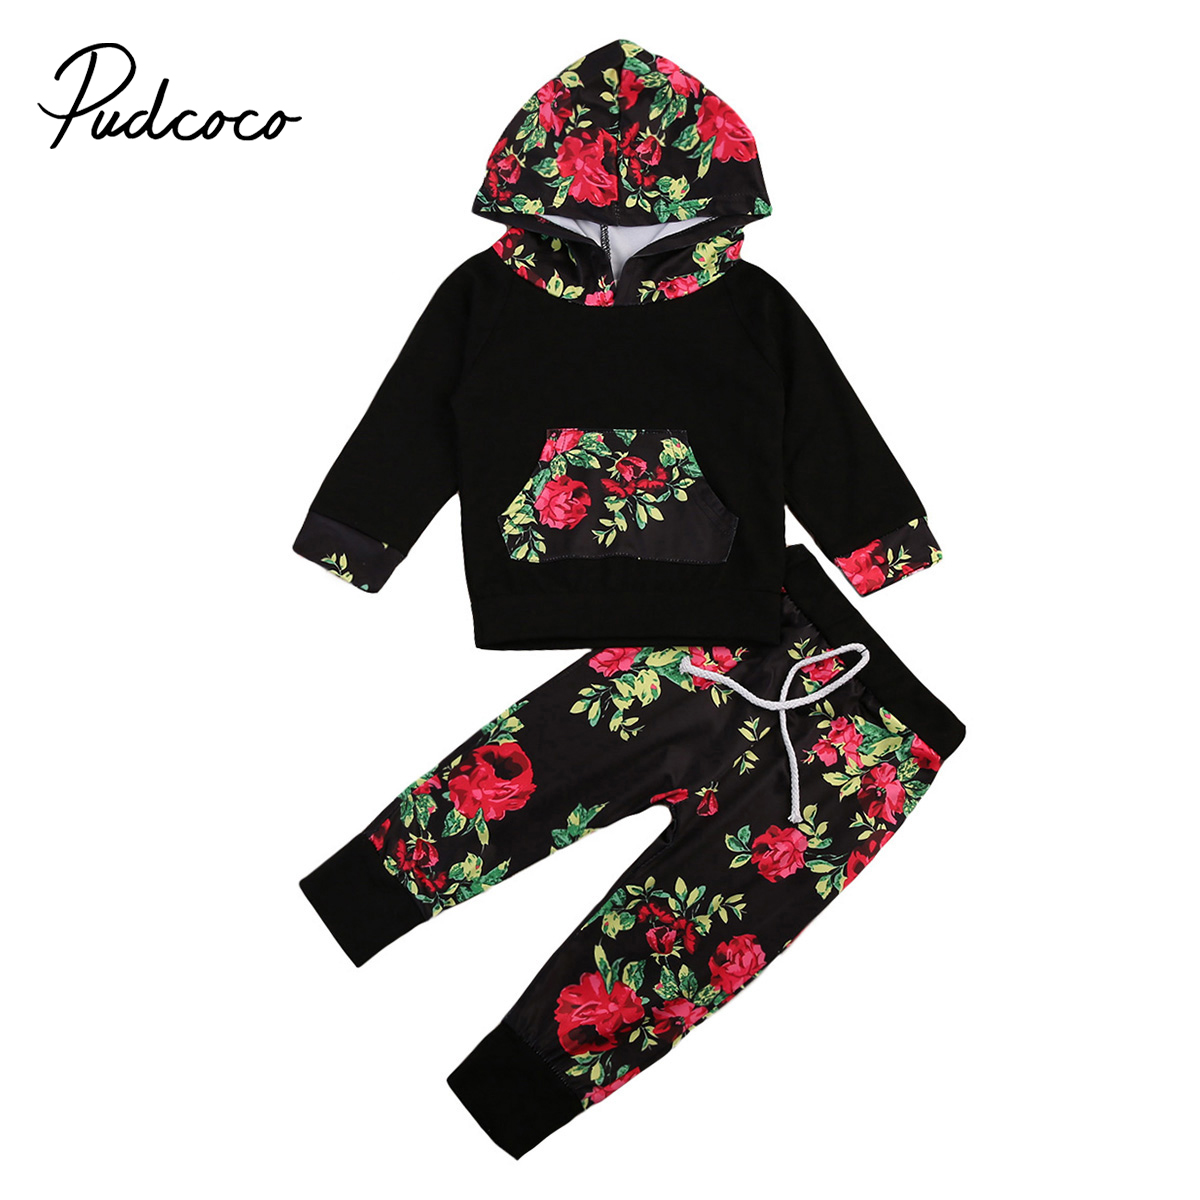 2017 Baby Girl Flower Winter Clothes Shirt Long Sleeve Cotton Tops+Pants Leggings Set Fall Cotton Girls Hoodie Toddler Clothing toddler kids baby girls clothing cotton t shirt tops short sleeve pants 2pcs outfit clothes set girl tracksuit